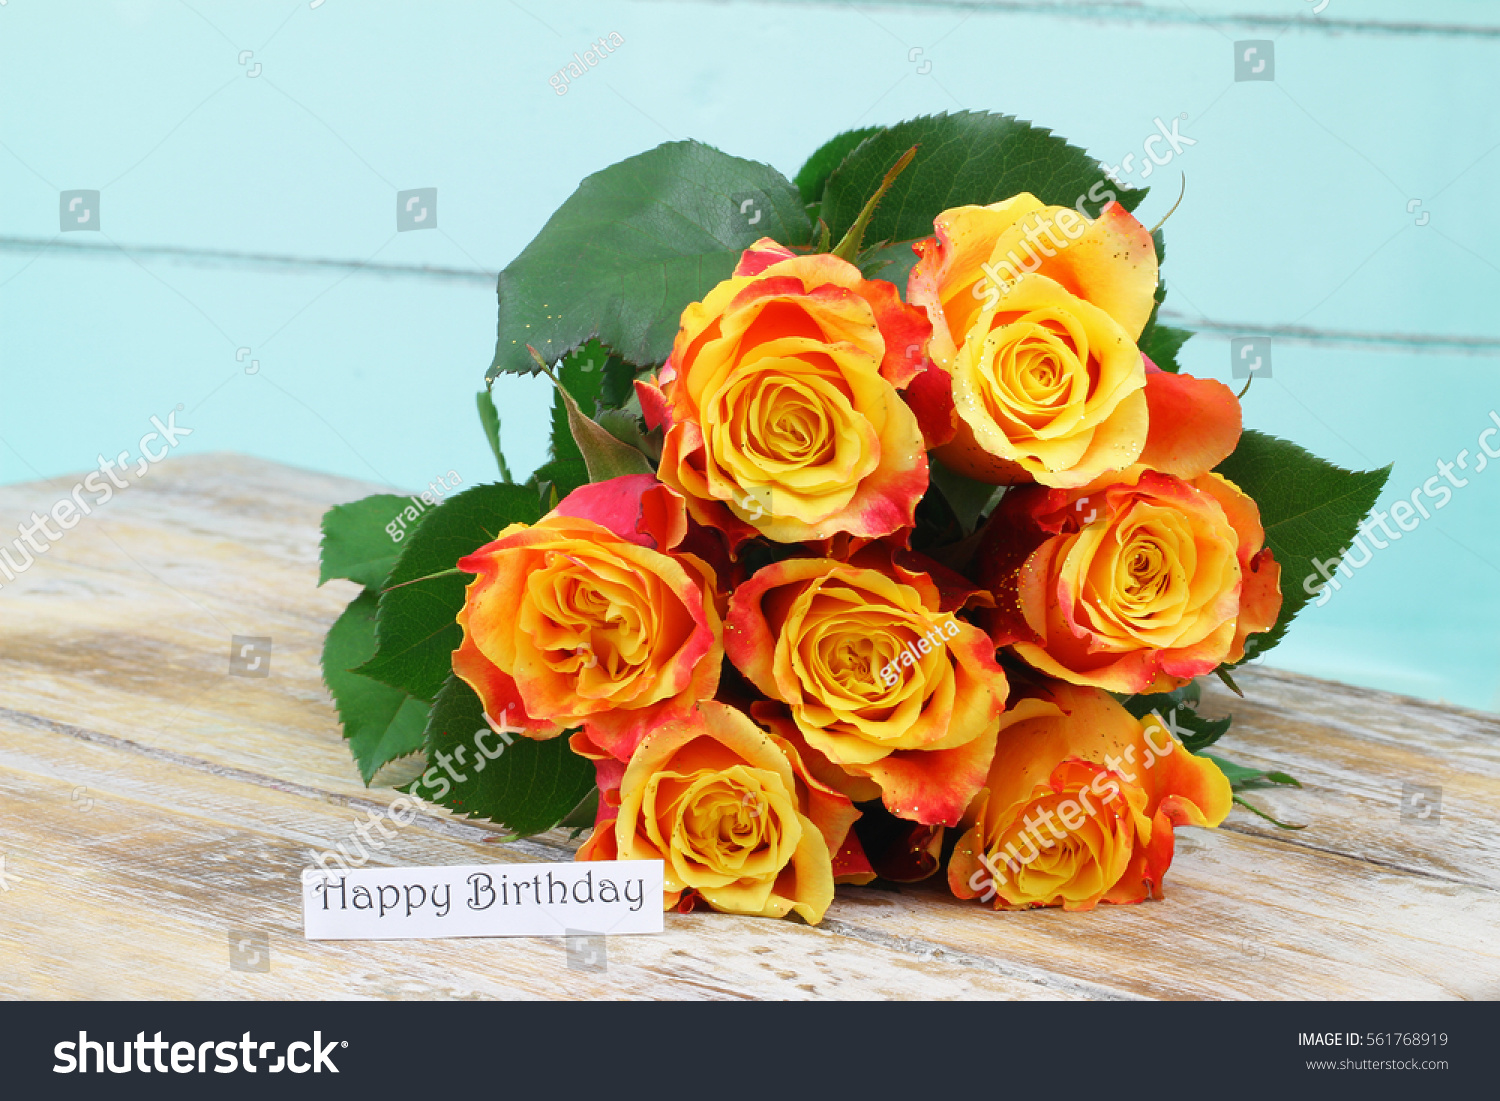 Happy Birthday Card Bouquet Roses Sprinkled Stock Photo (Royalty ...